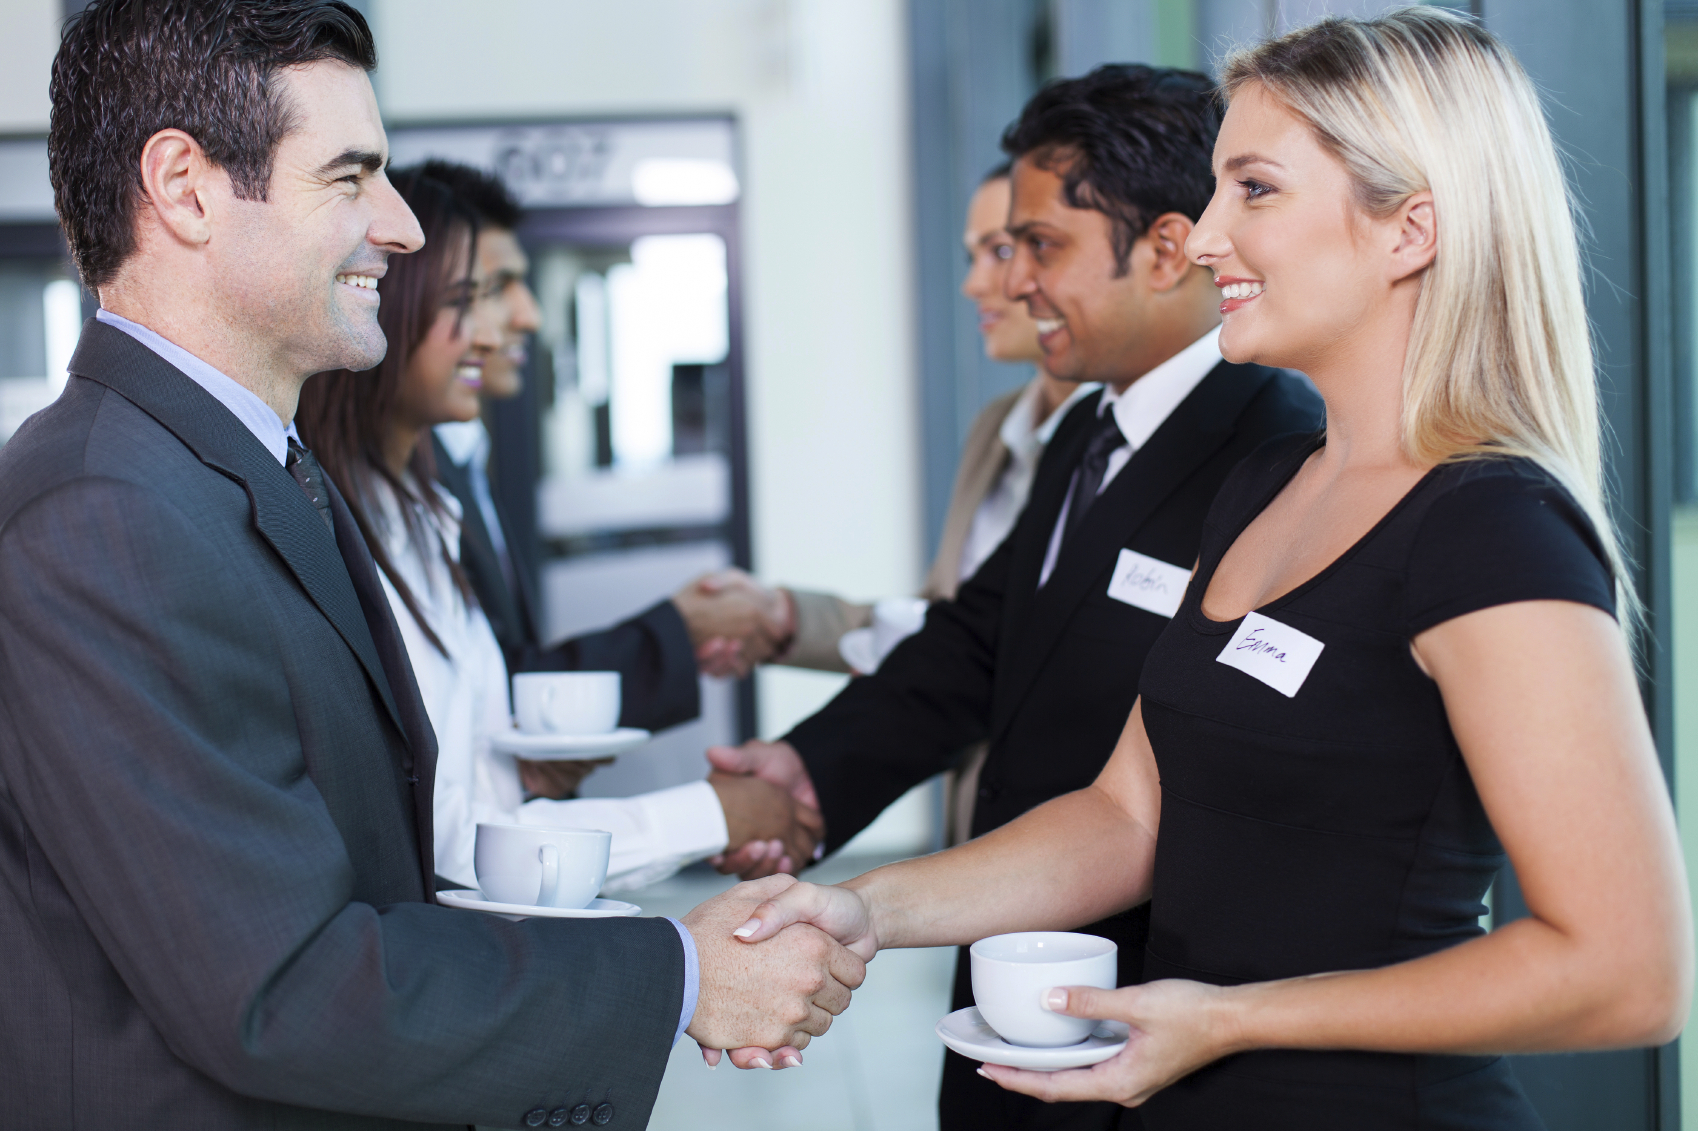 6 Mistakes People Make At Networking Events